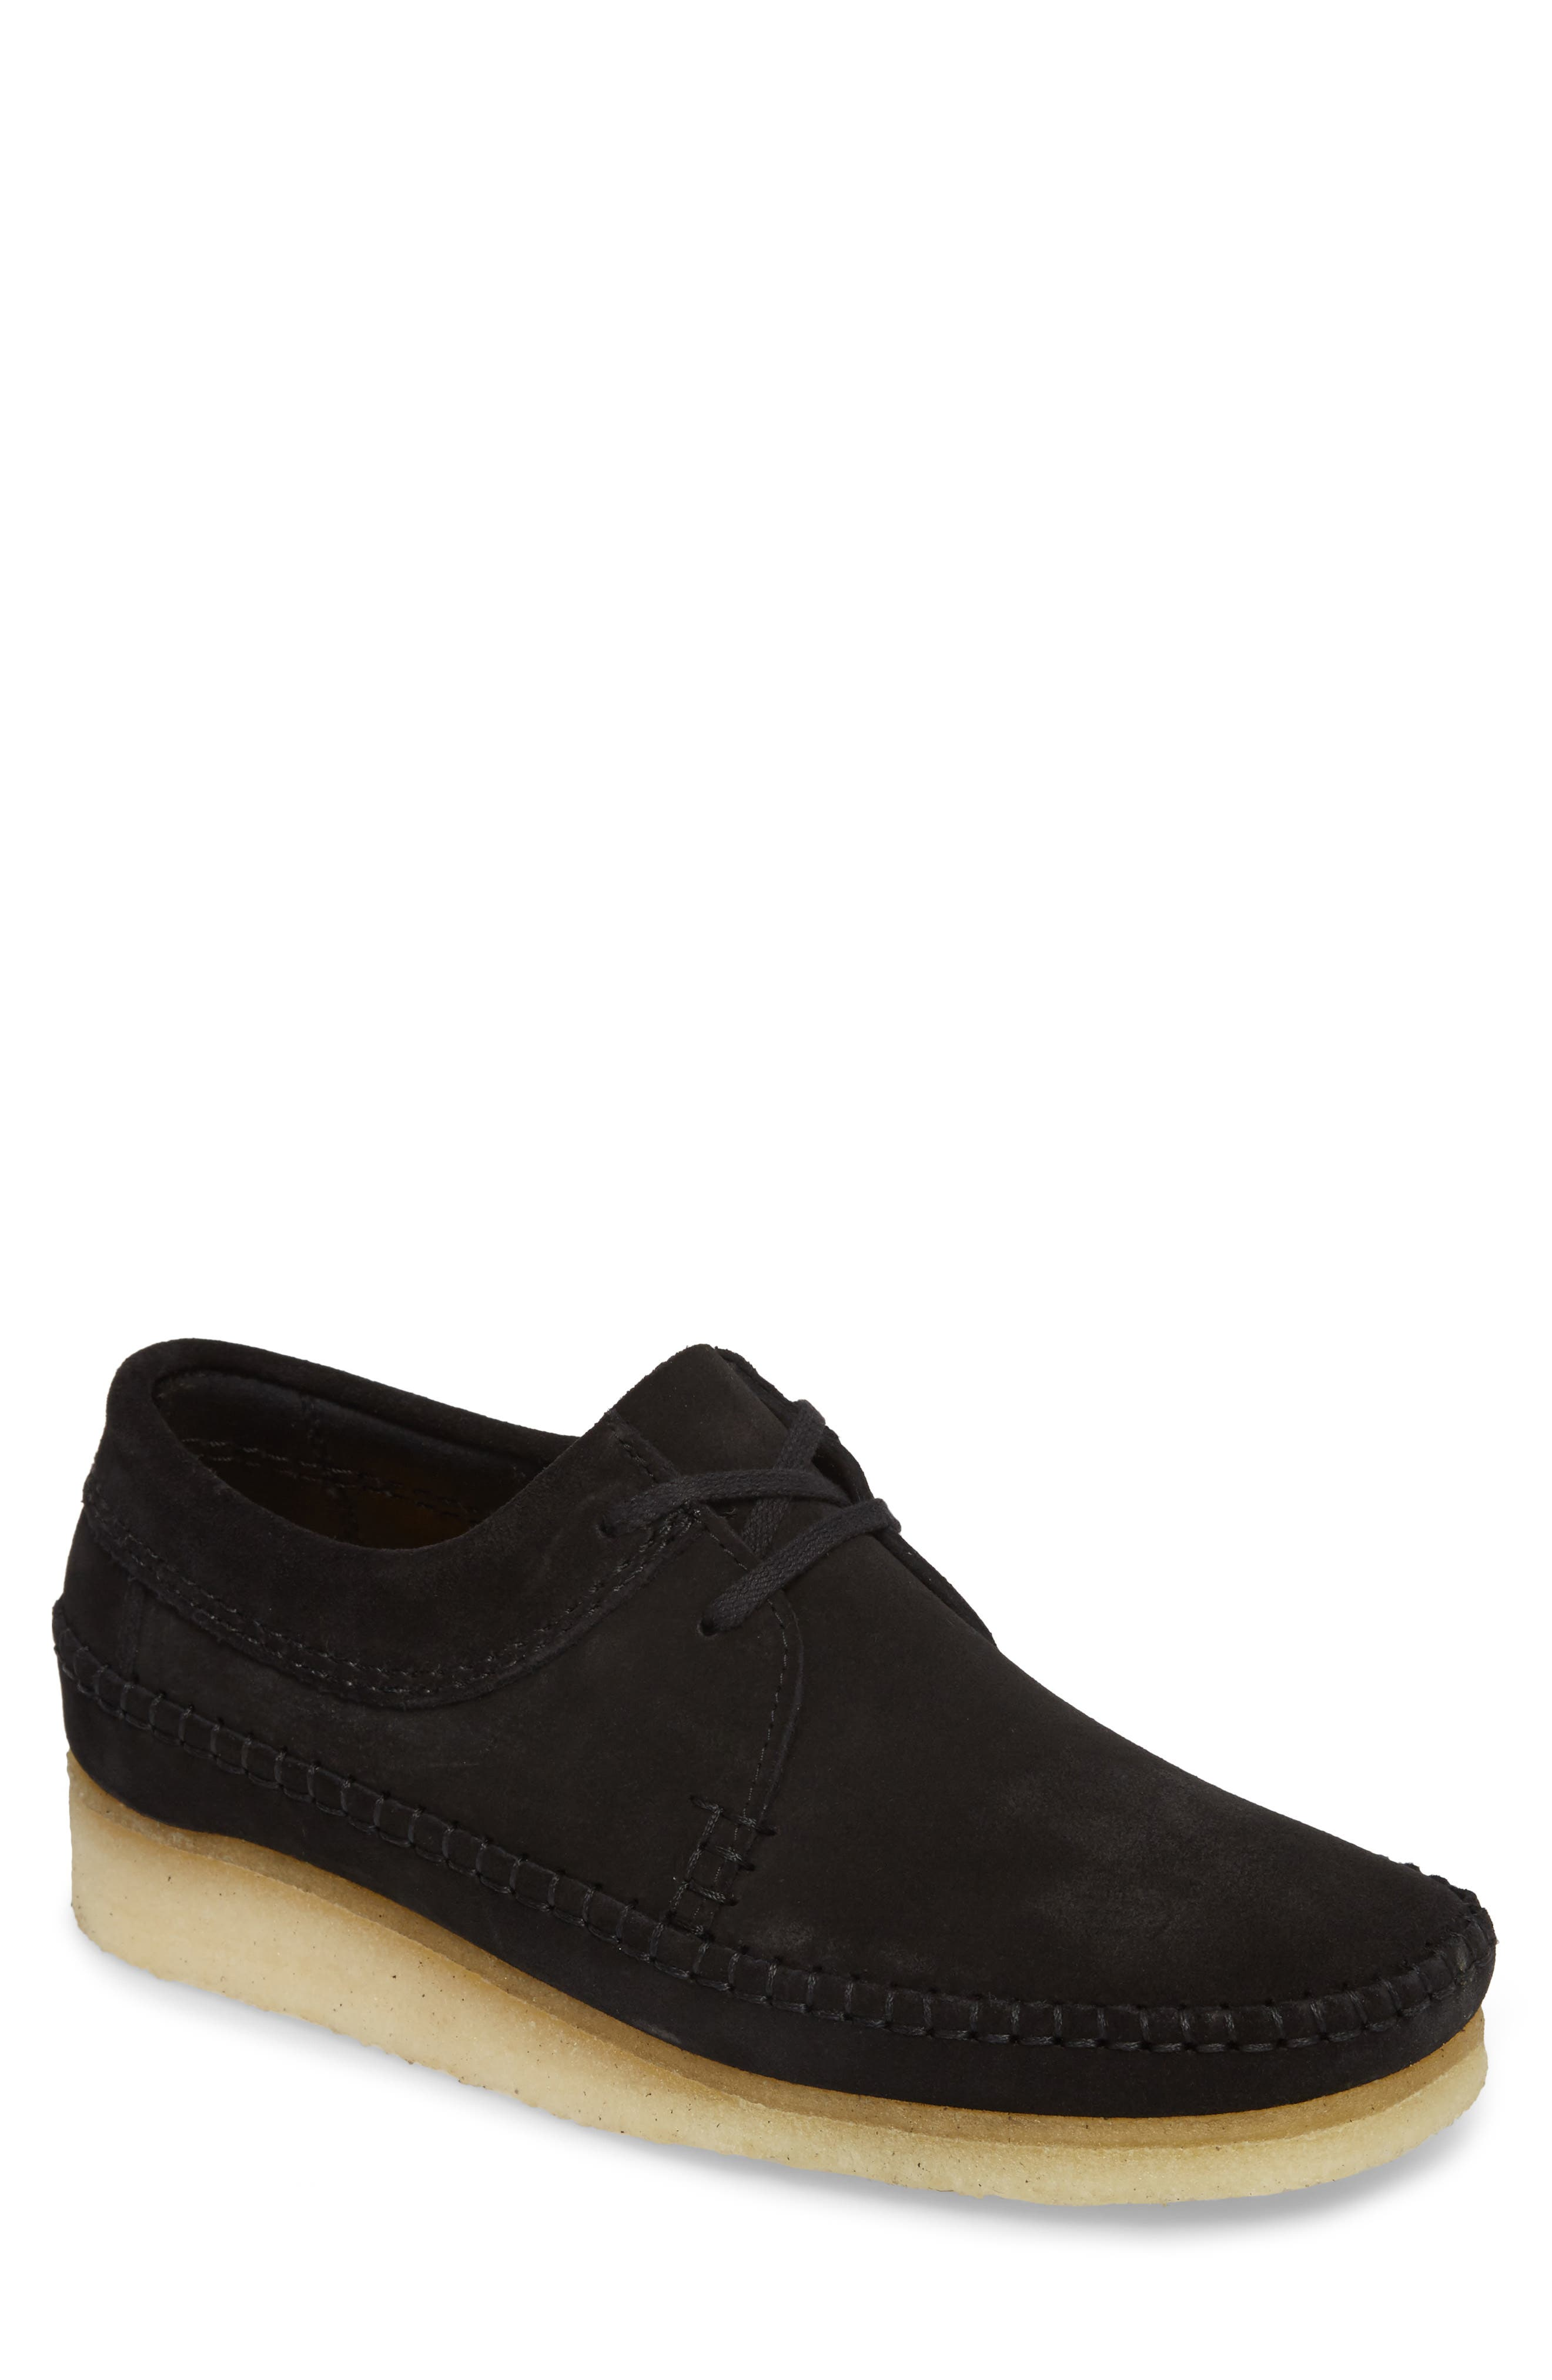 Weaver Moc Toe Derby,                         Main,                         color, Black Suede